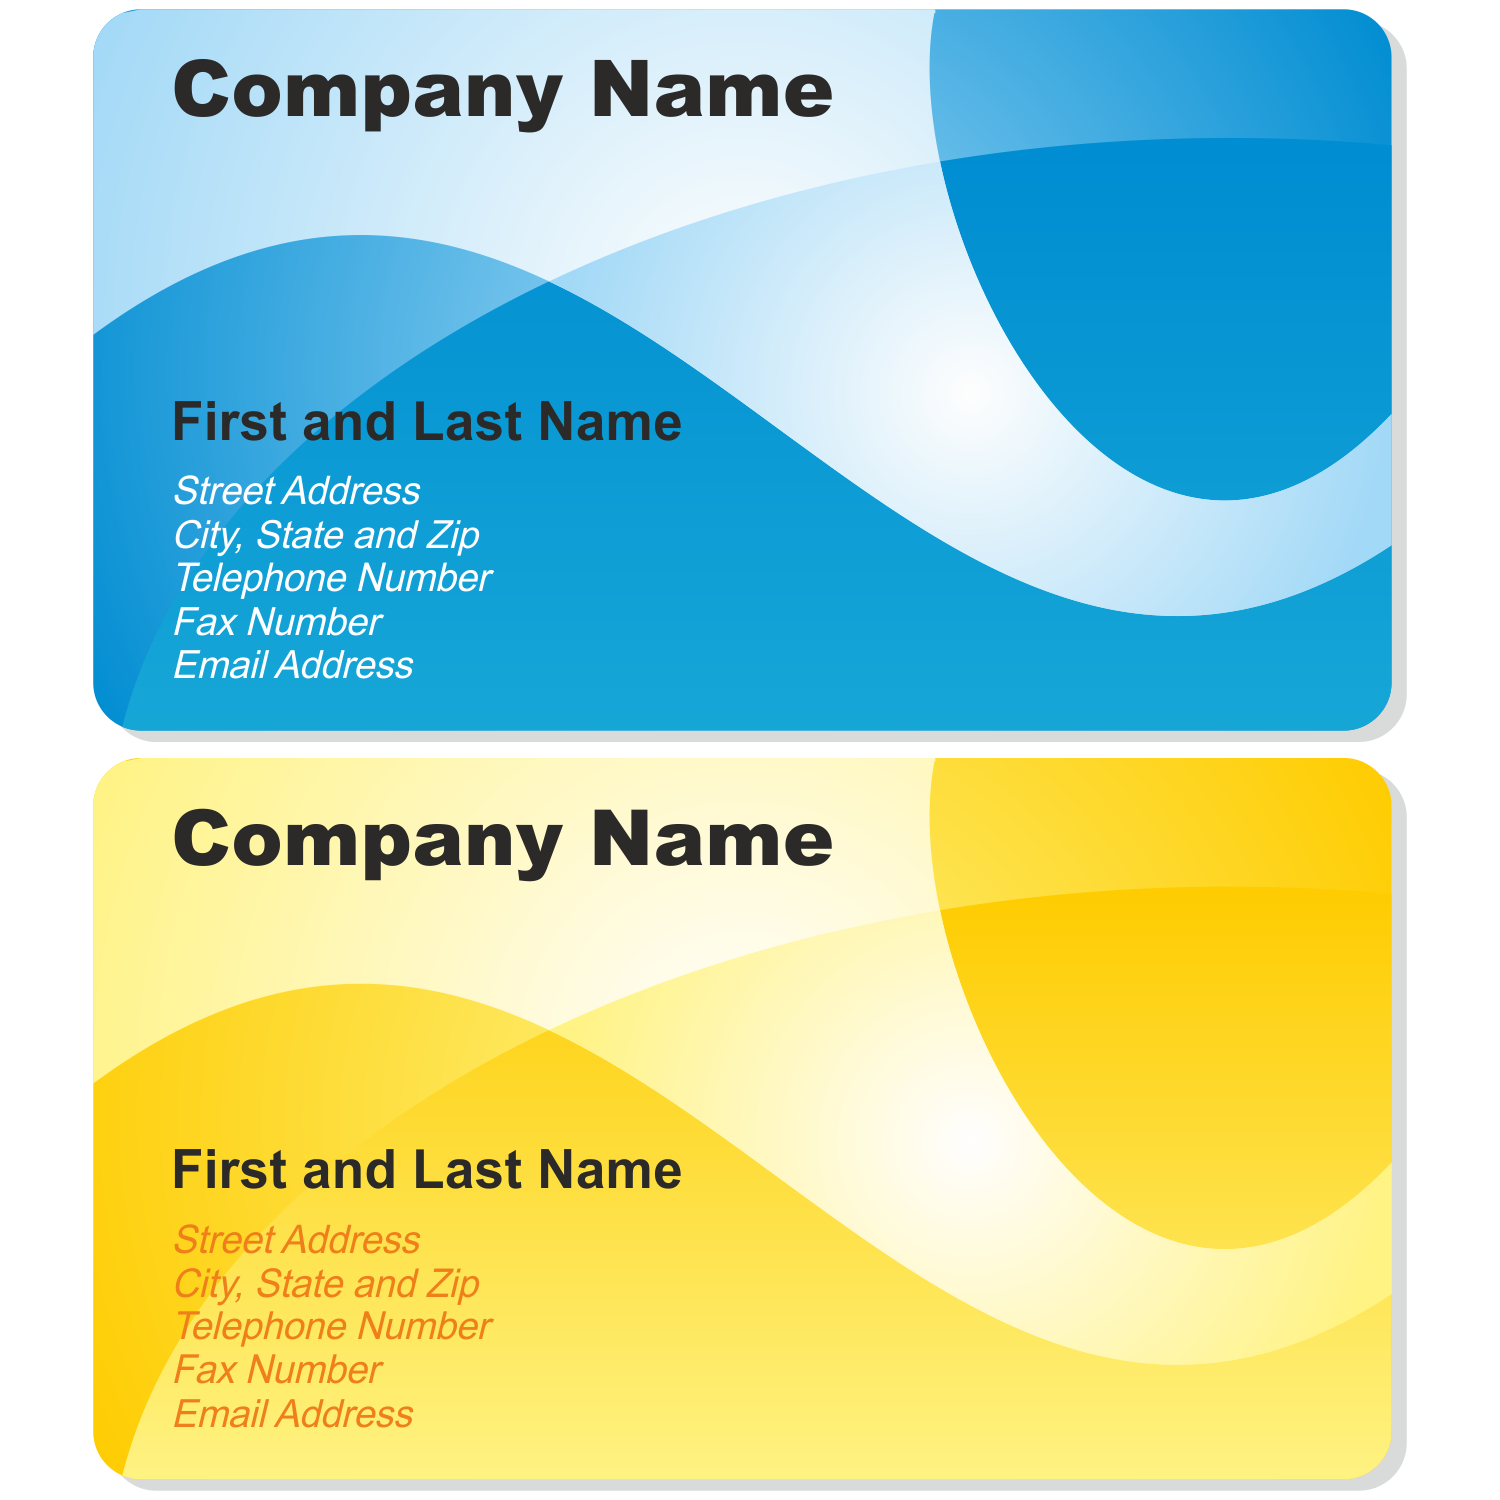 Calling Card Template Png 9 » Png Image For Template For Calling Card